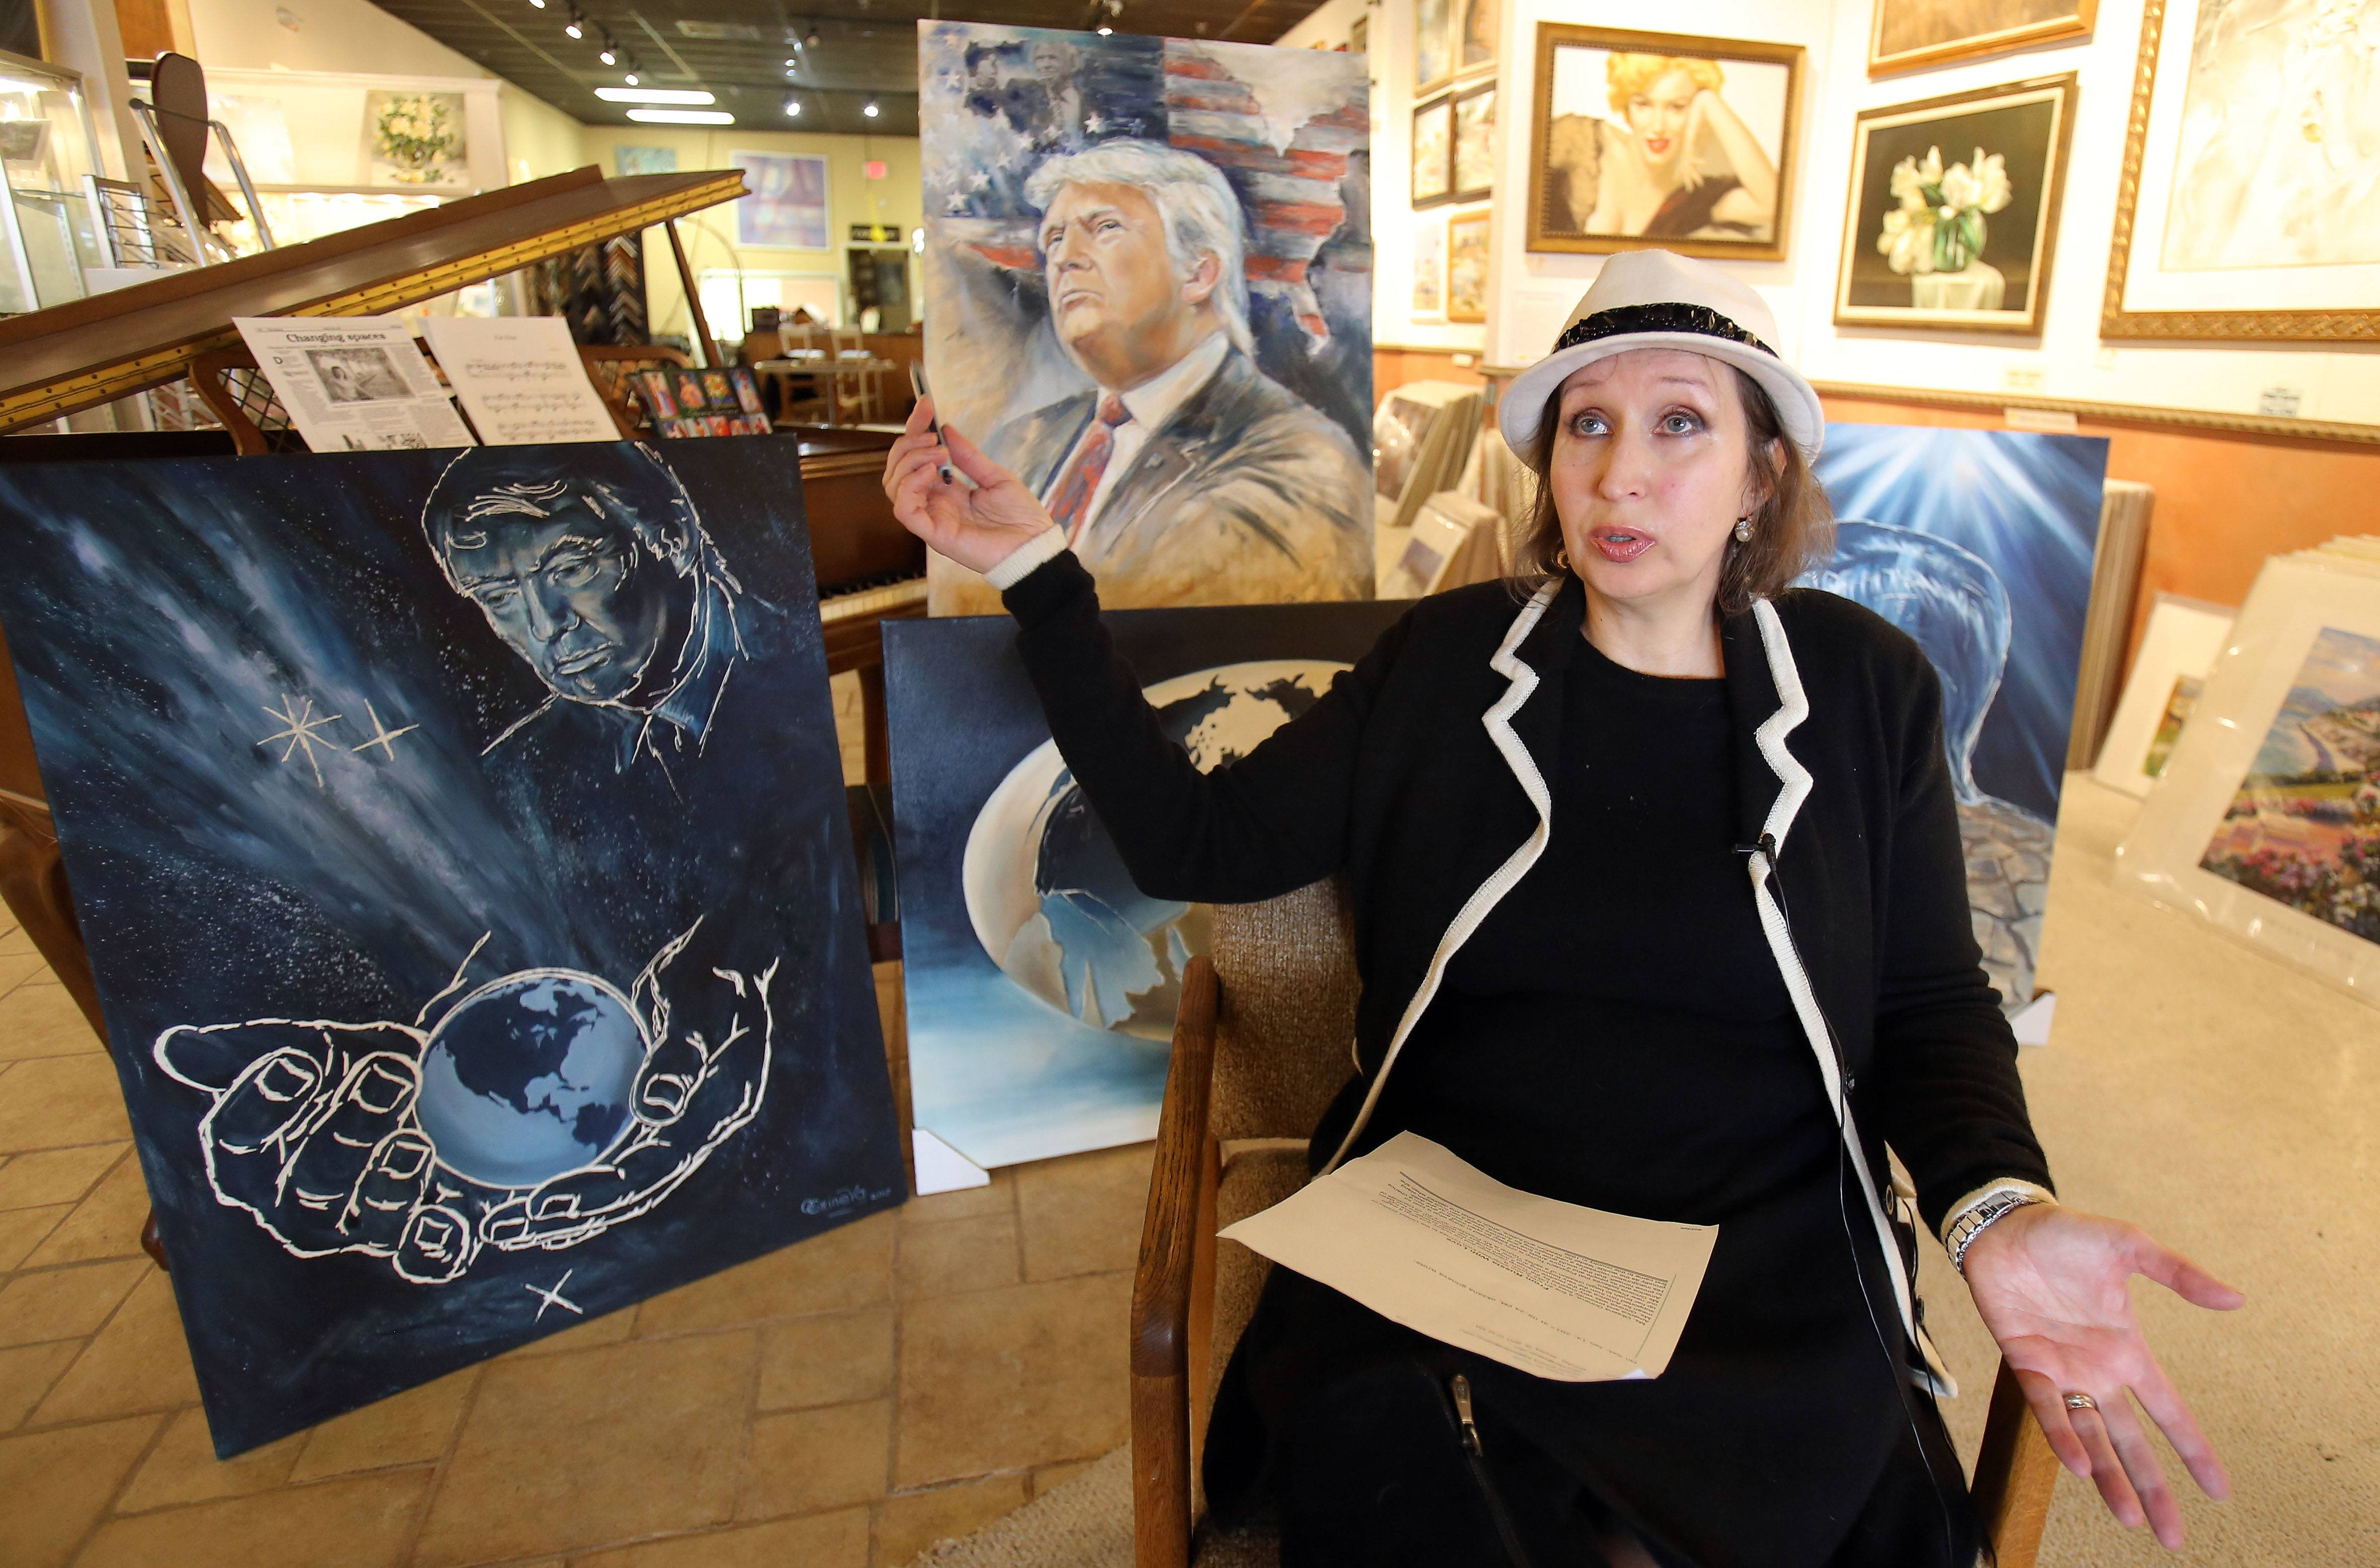 Lake Zurich artist Oksana Grineva says she feels compelled to paint tributes to Donald Trump.